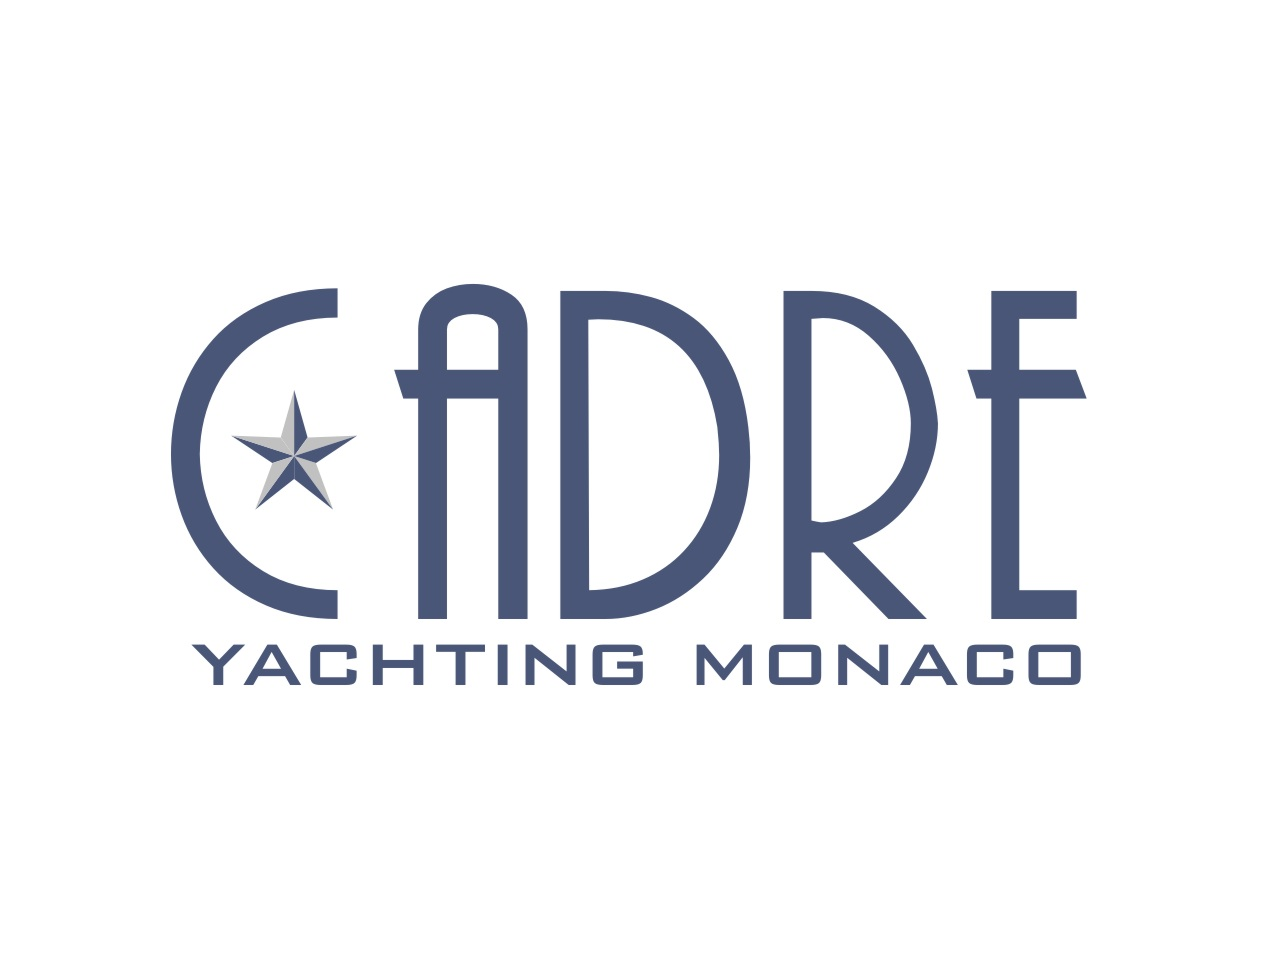 Logo Design by ggrando - Entry No. 334 in the Logo Design Contest New Logo Design for Cadre Yachting Monaco.